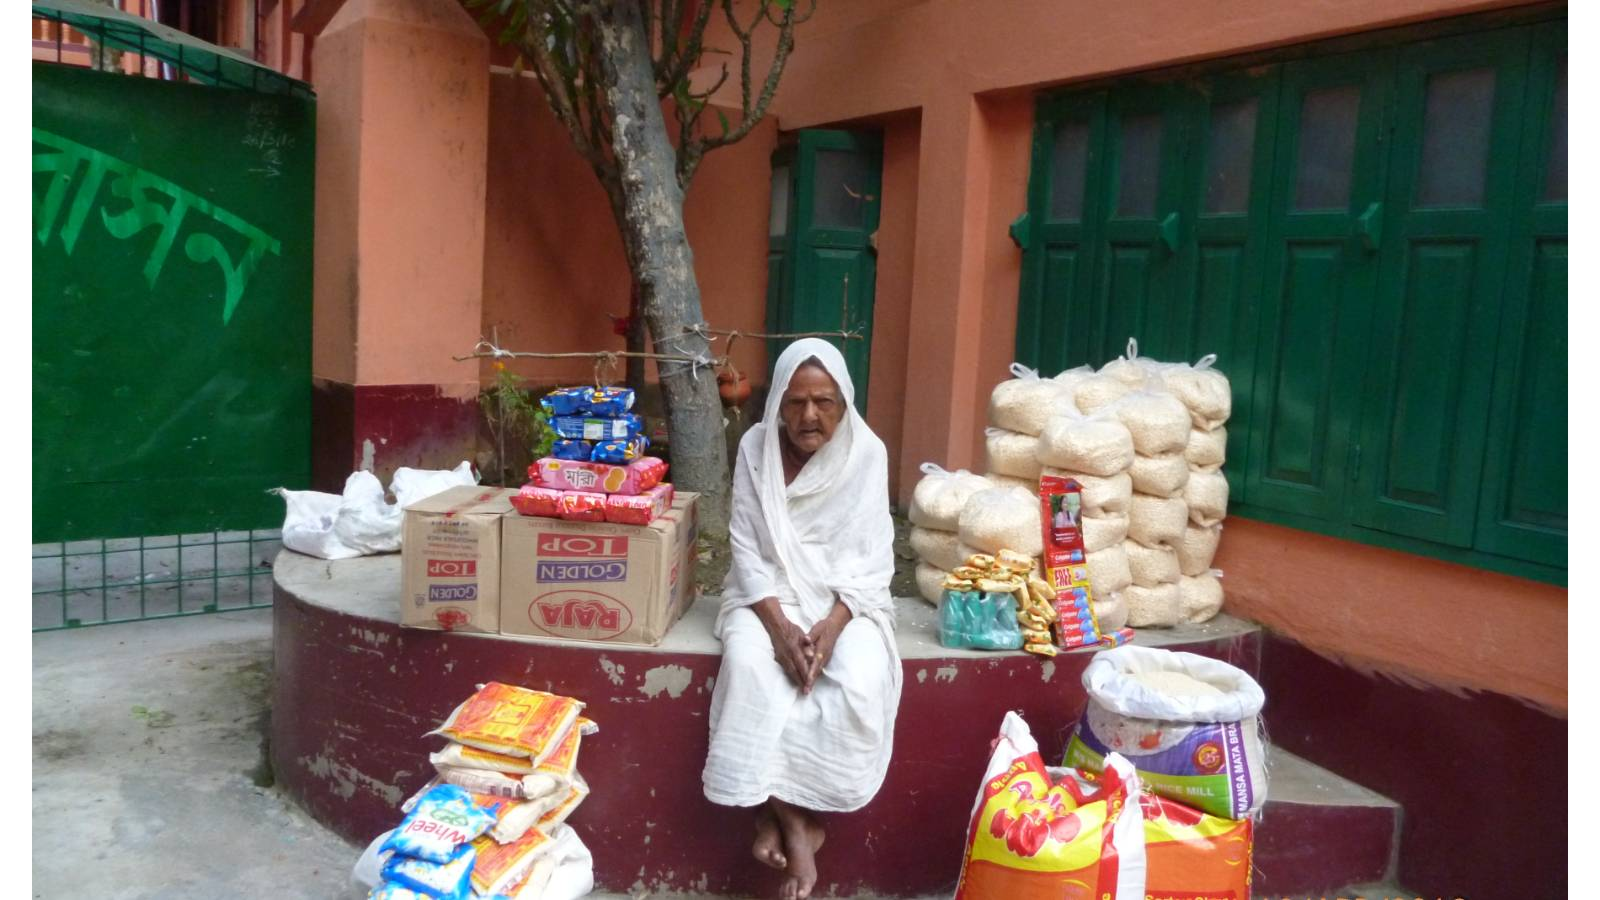 Poor and very old women are being distributed nutritious food and health case items / things